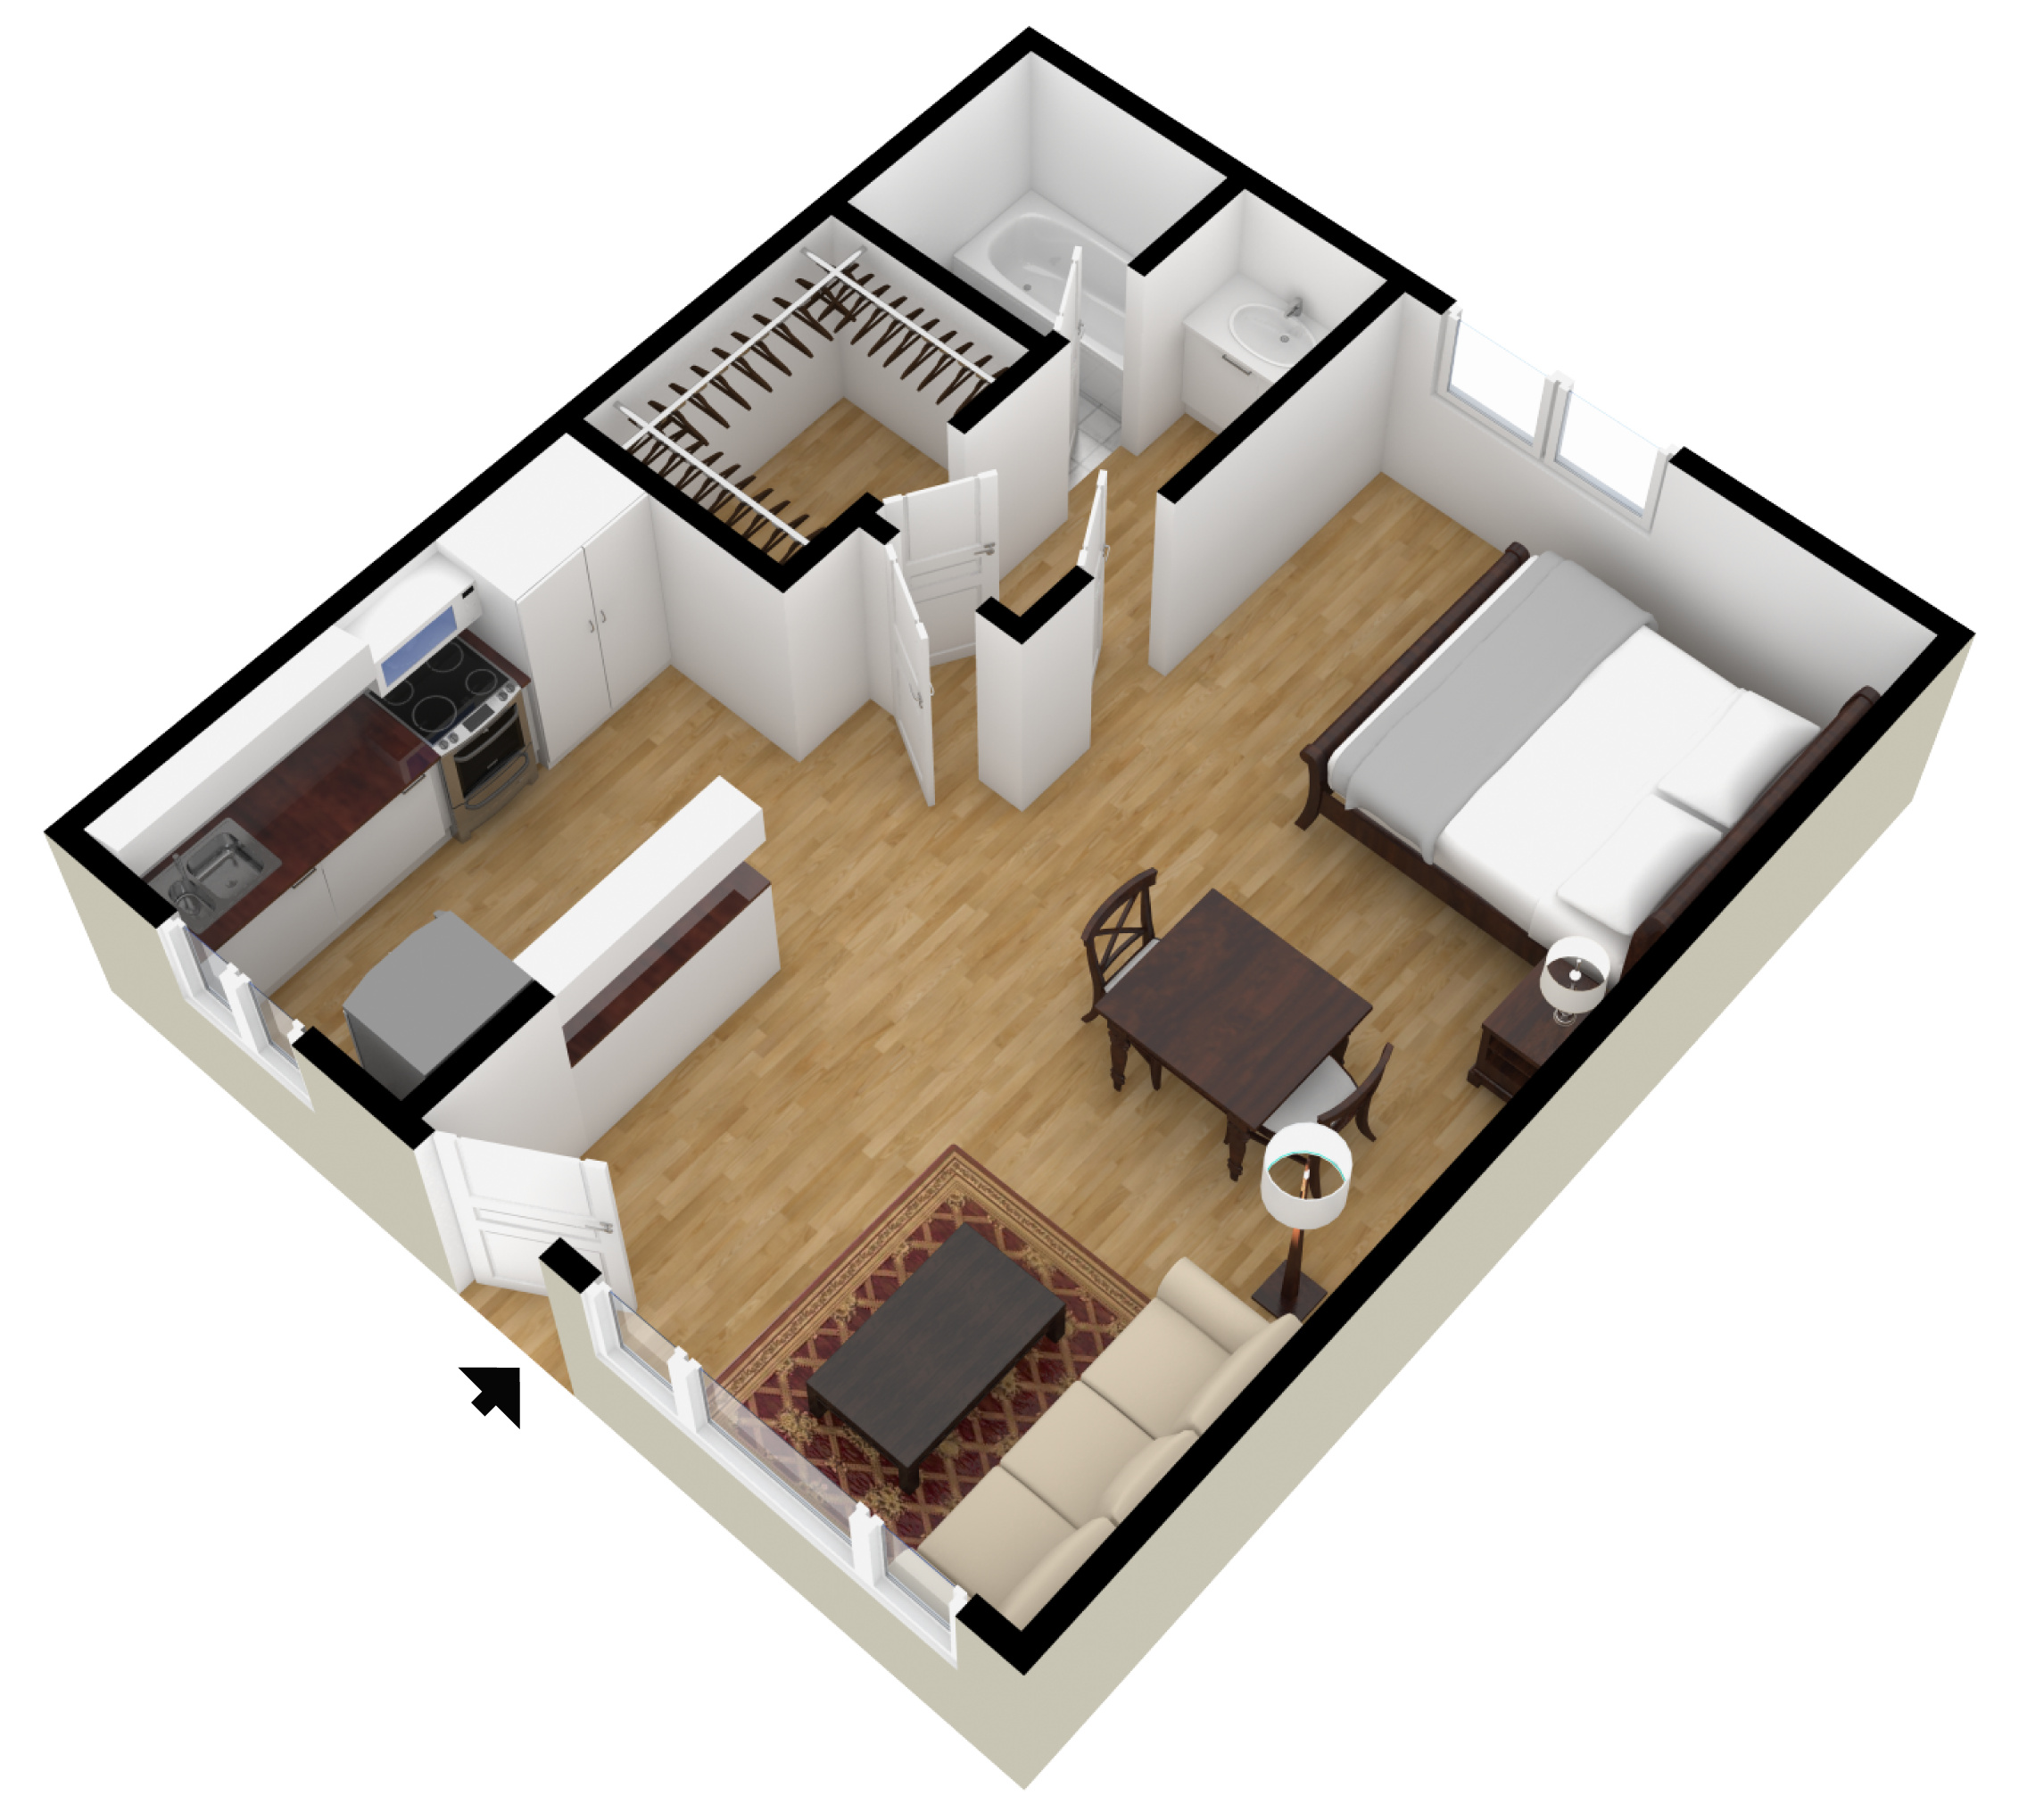 Studio 1 2 bedroom floor plans city plaza apartments for 2 bedroom studio apartment plans